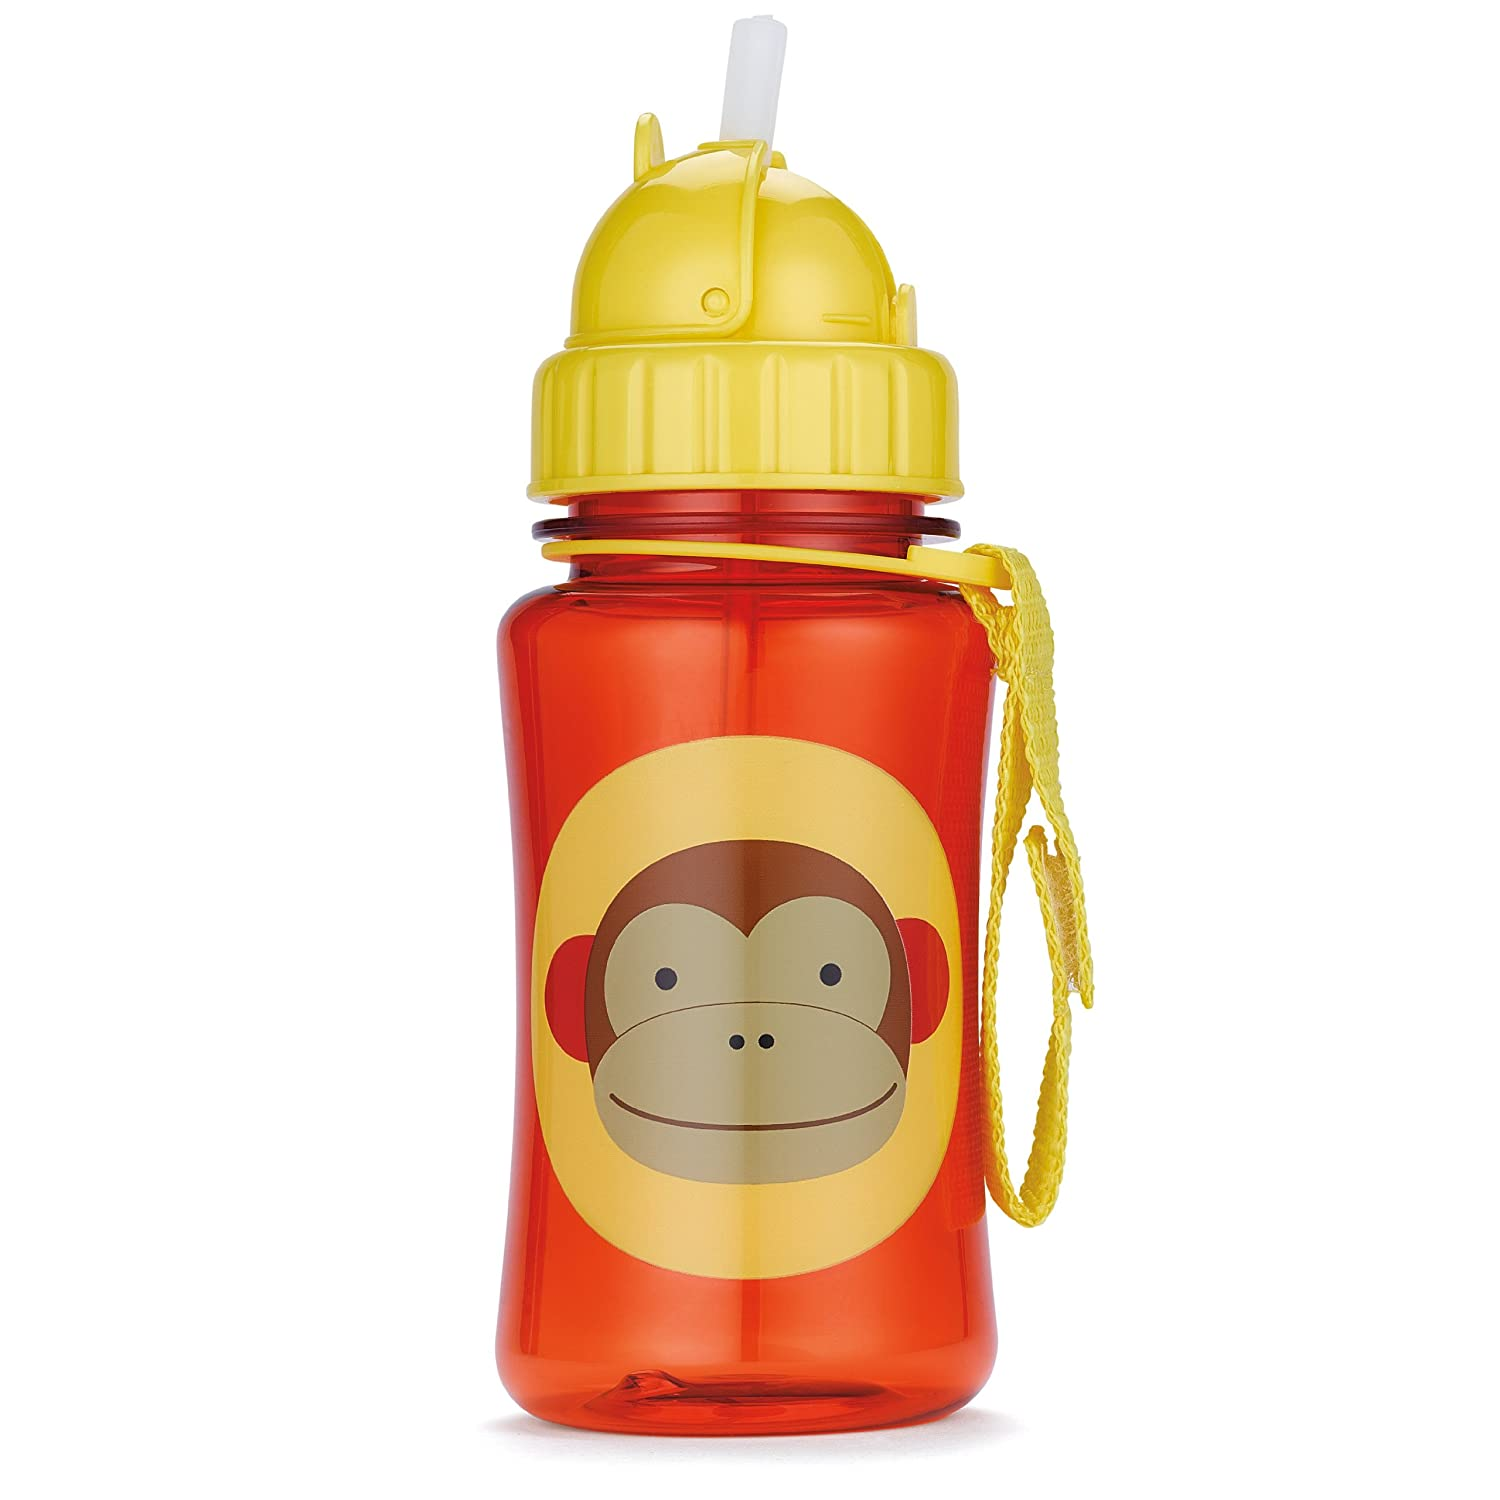 Big Top Cups With Straws : Skip hop monkey toddler sippy cup straw bottle new nib ebay